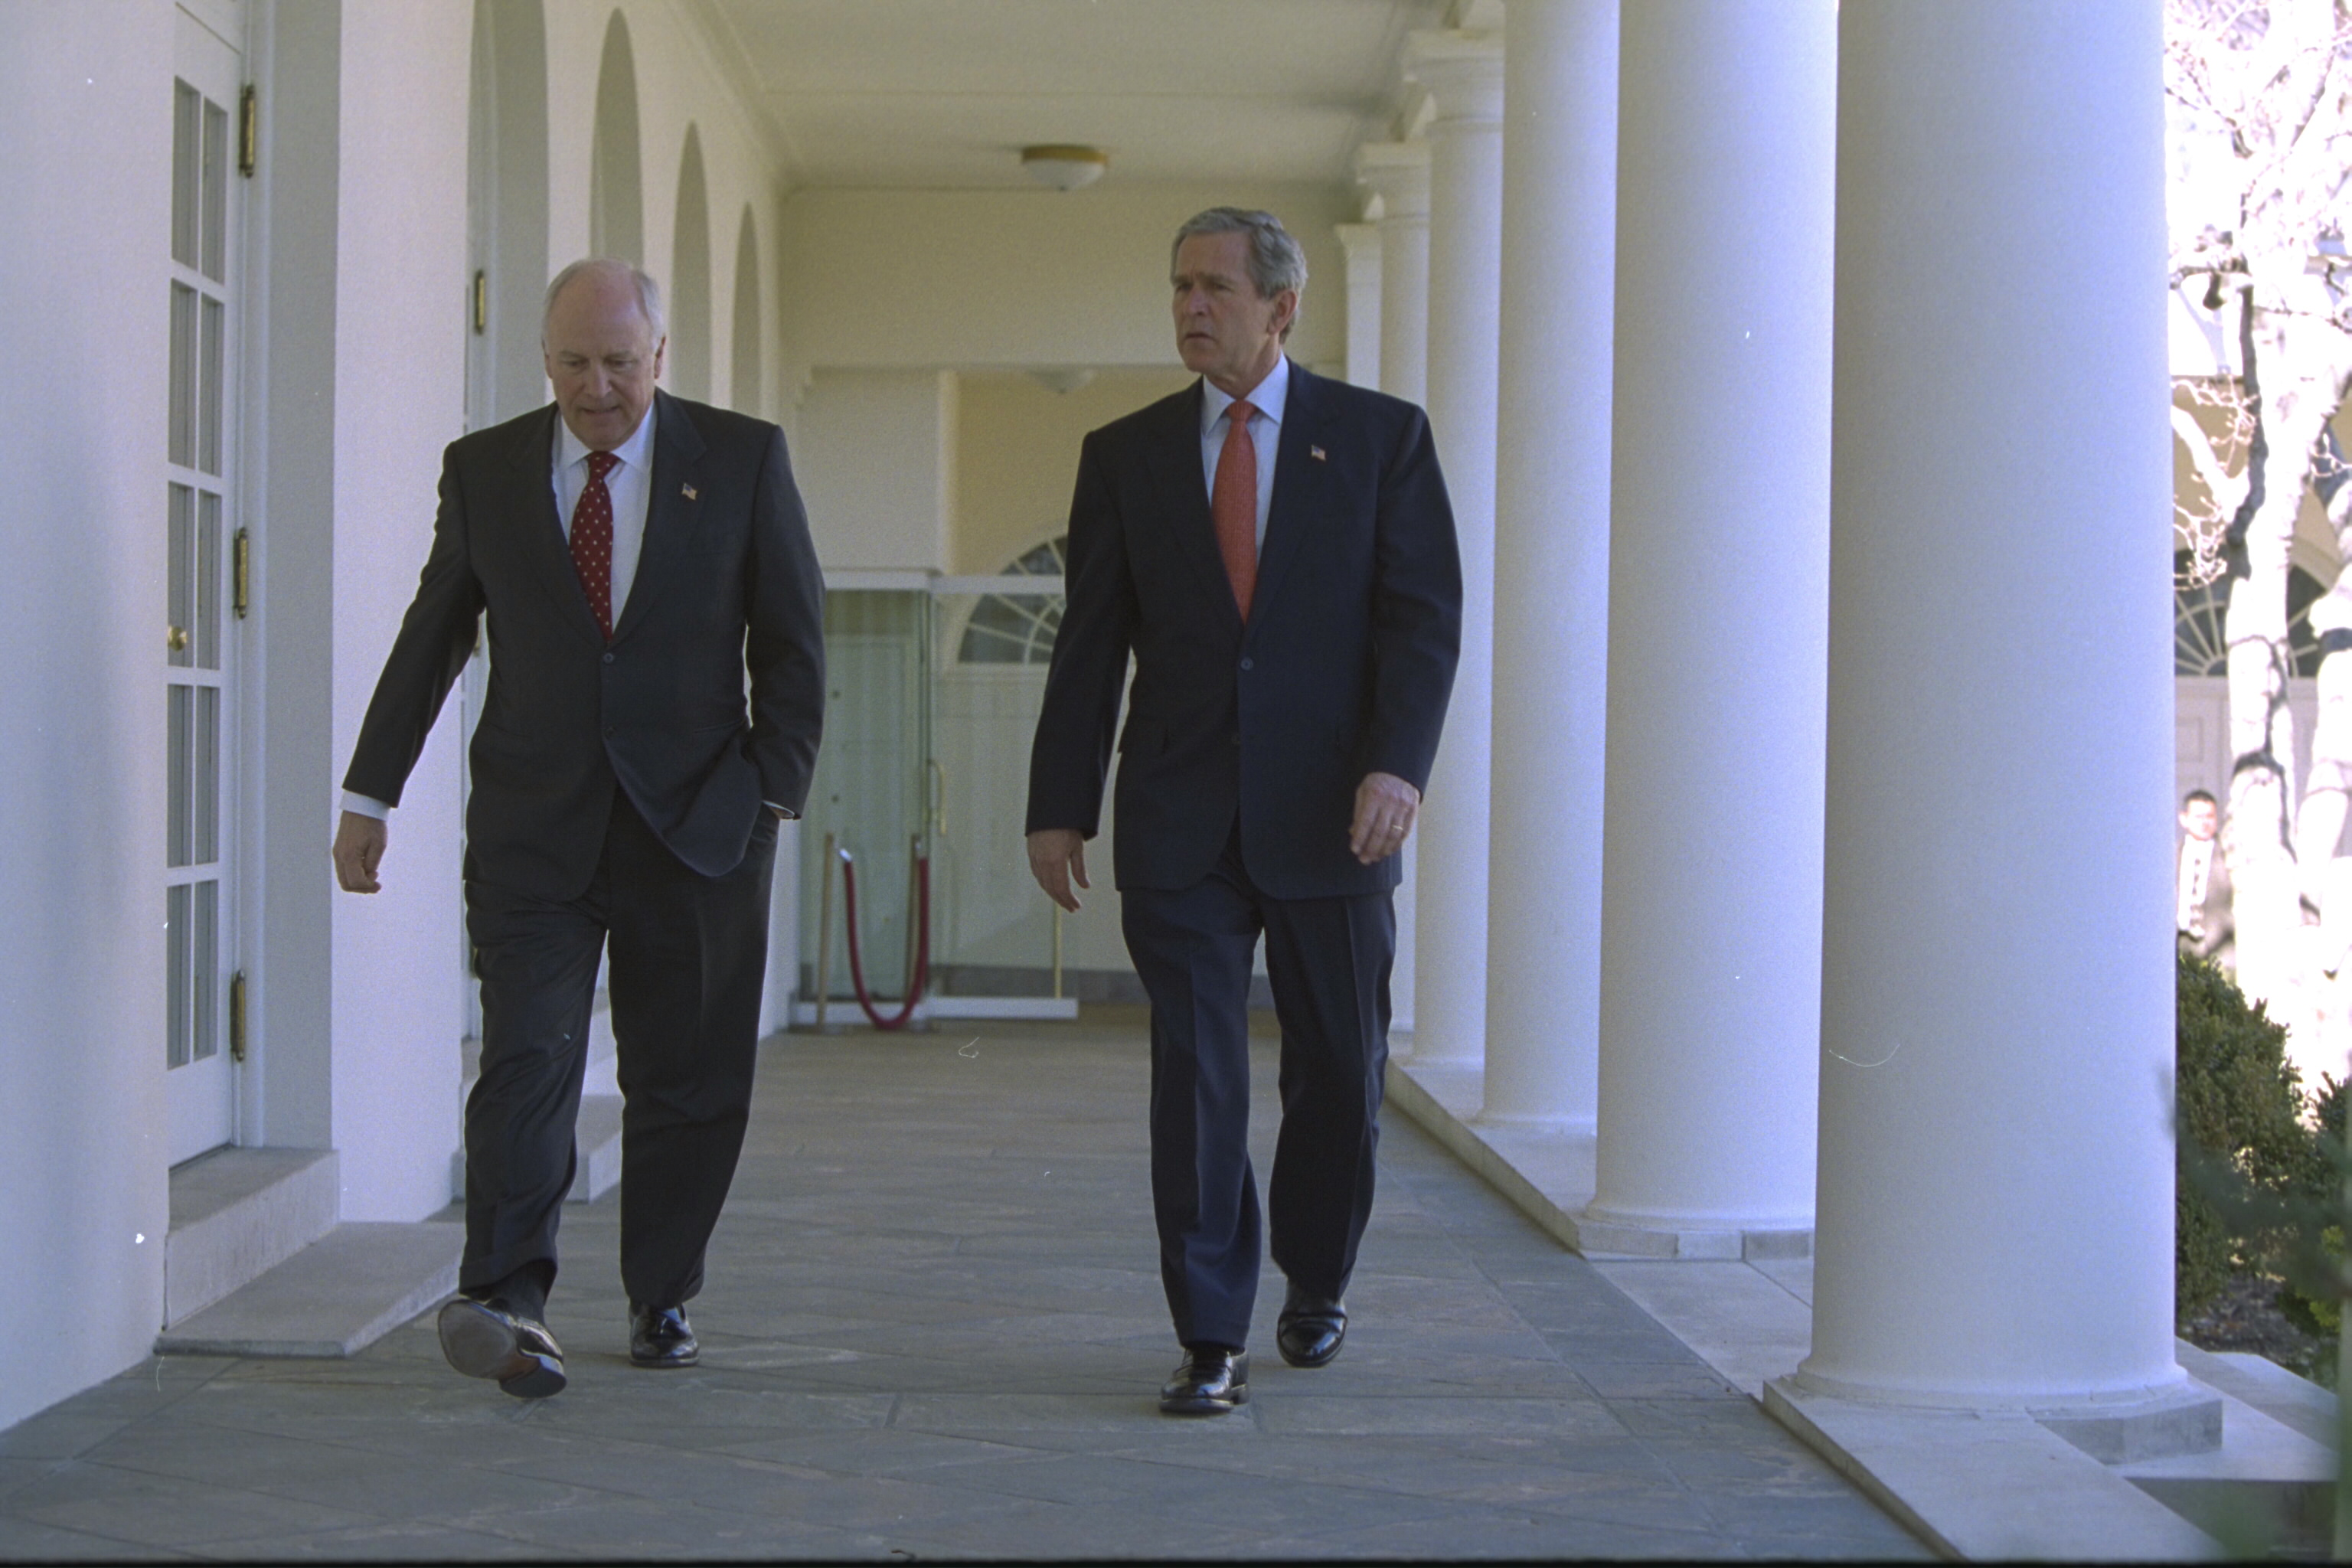 President Bush and Vice President Cheney Walk Along the White House Colonnade